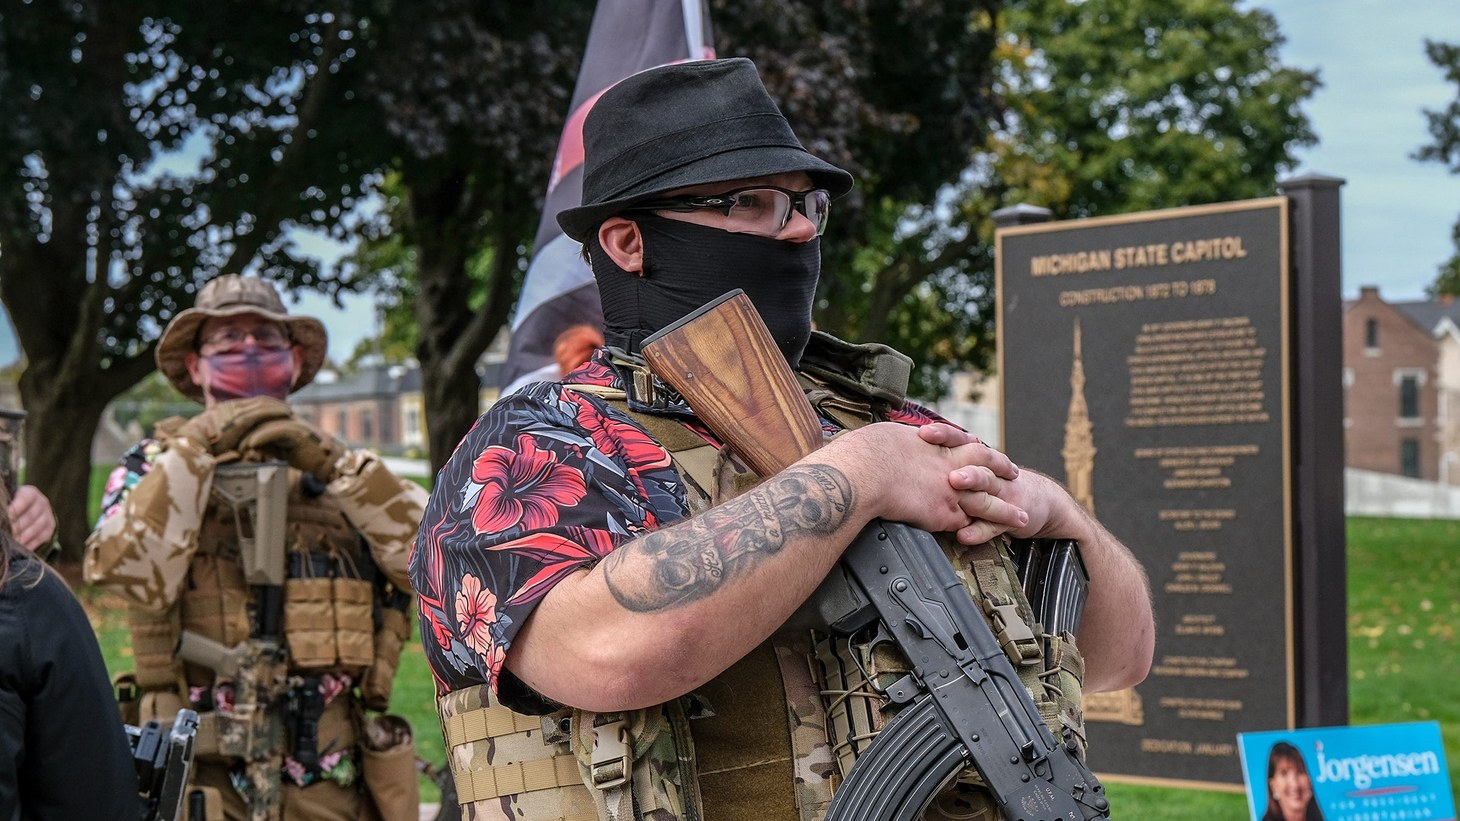 Heavily armed men and women of the Boogaloo Bois movement rally at the Michigan State Capitol on Oct. 17, 2020.